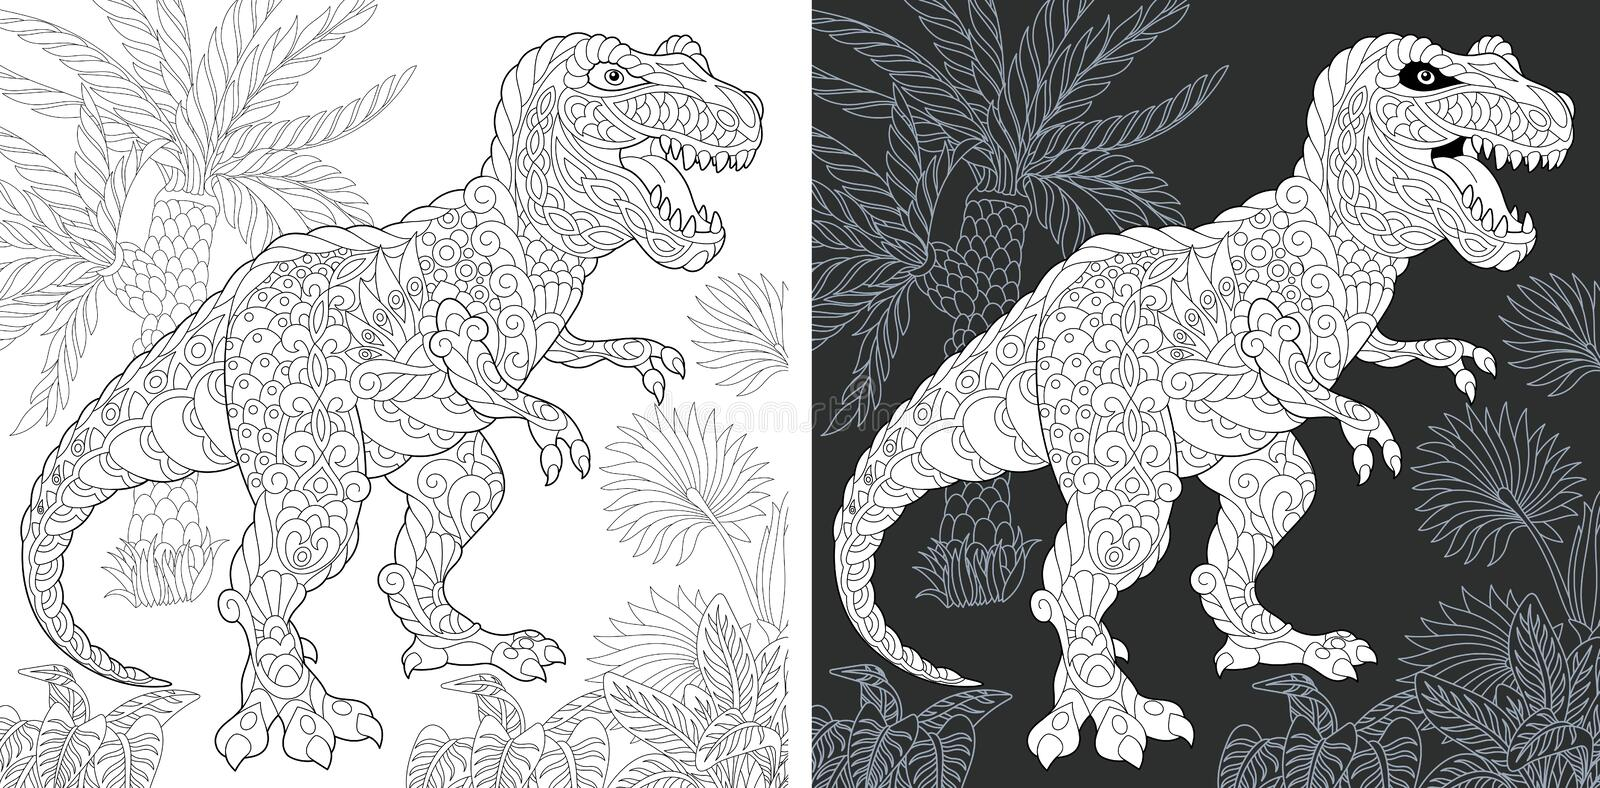 Coloring pages with Tyrannosaurus rex royalty free stock images